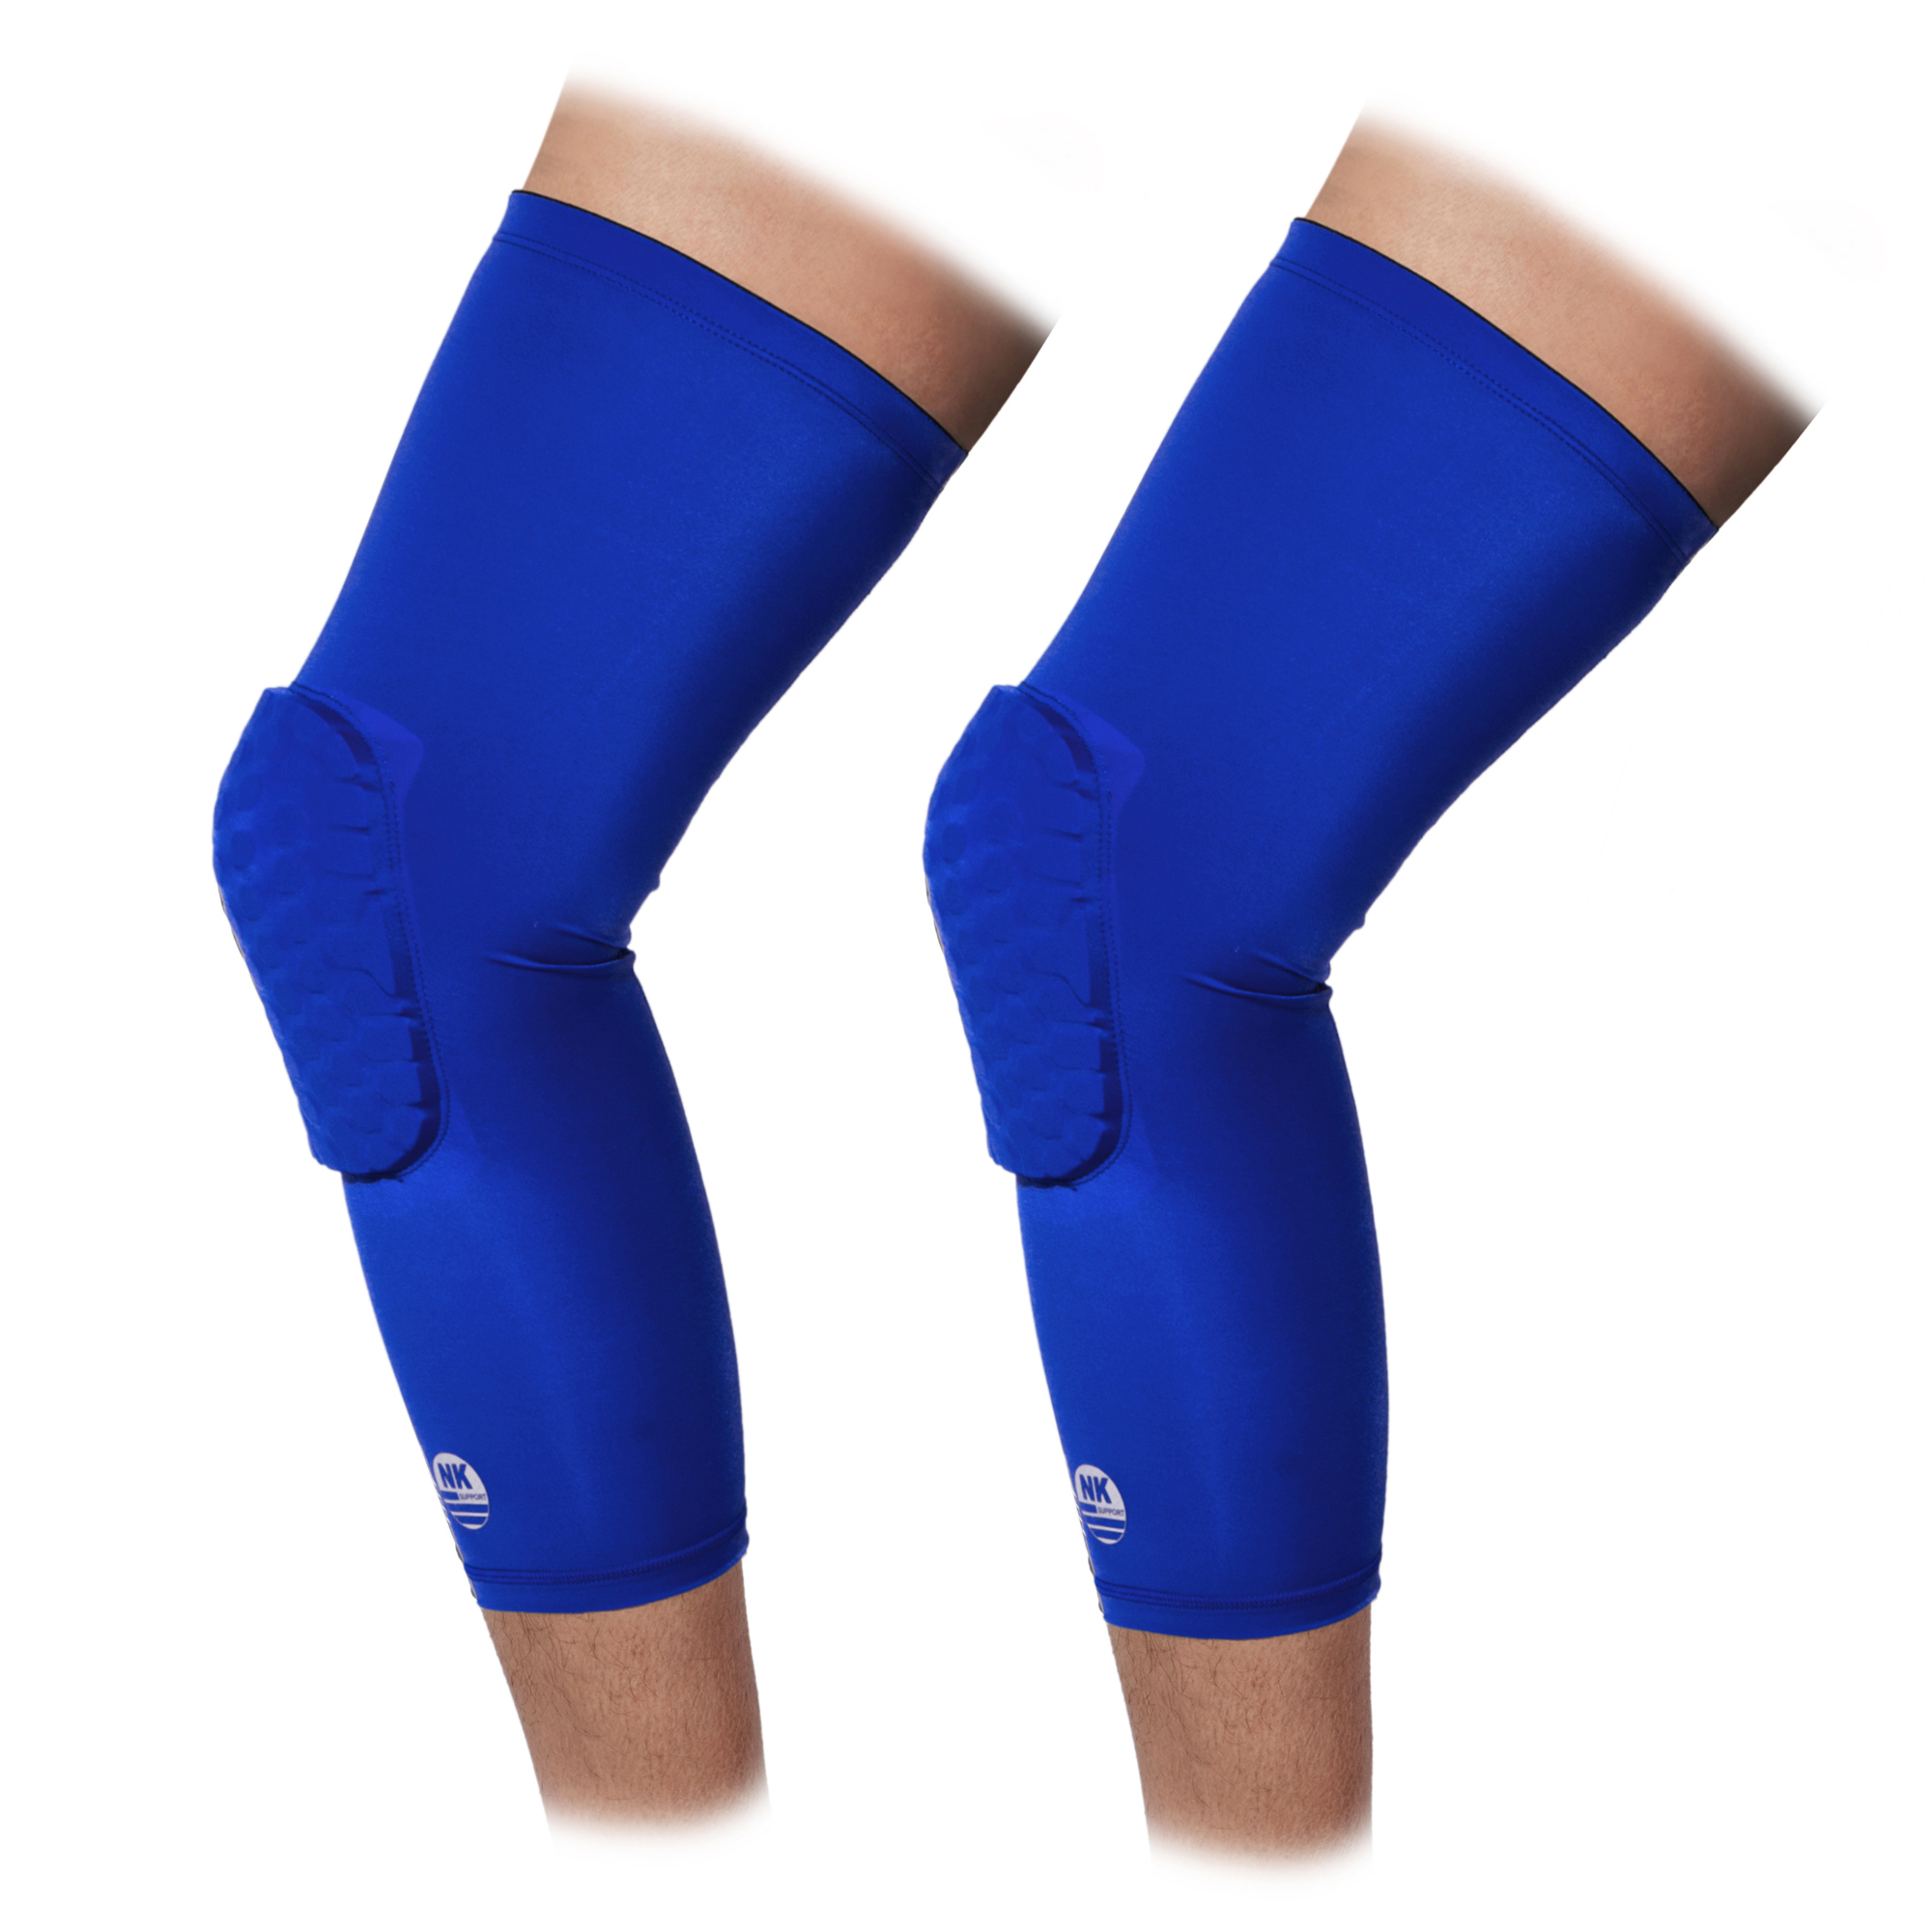 Nk Support Knee Pads Basketball Volleyball Protective Kneepads